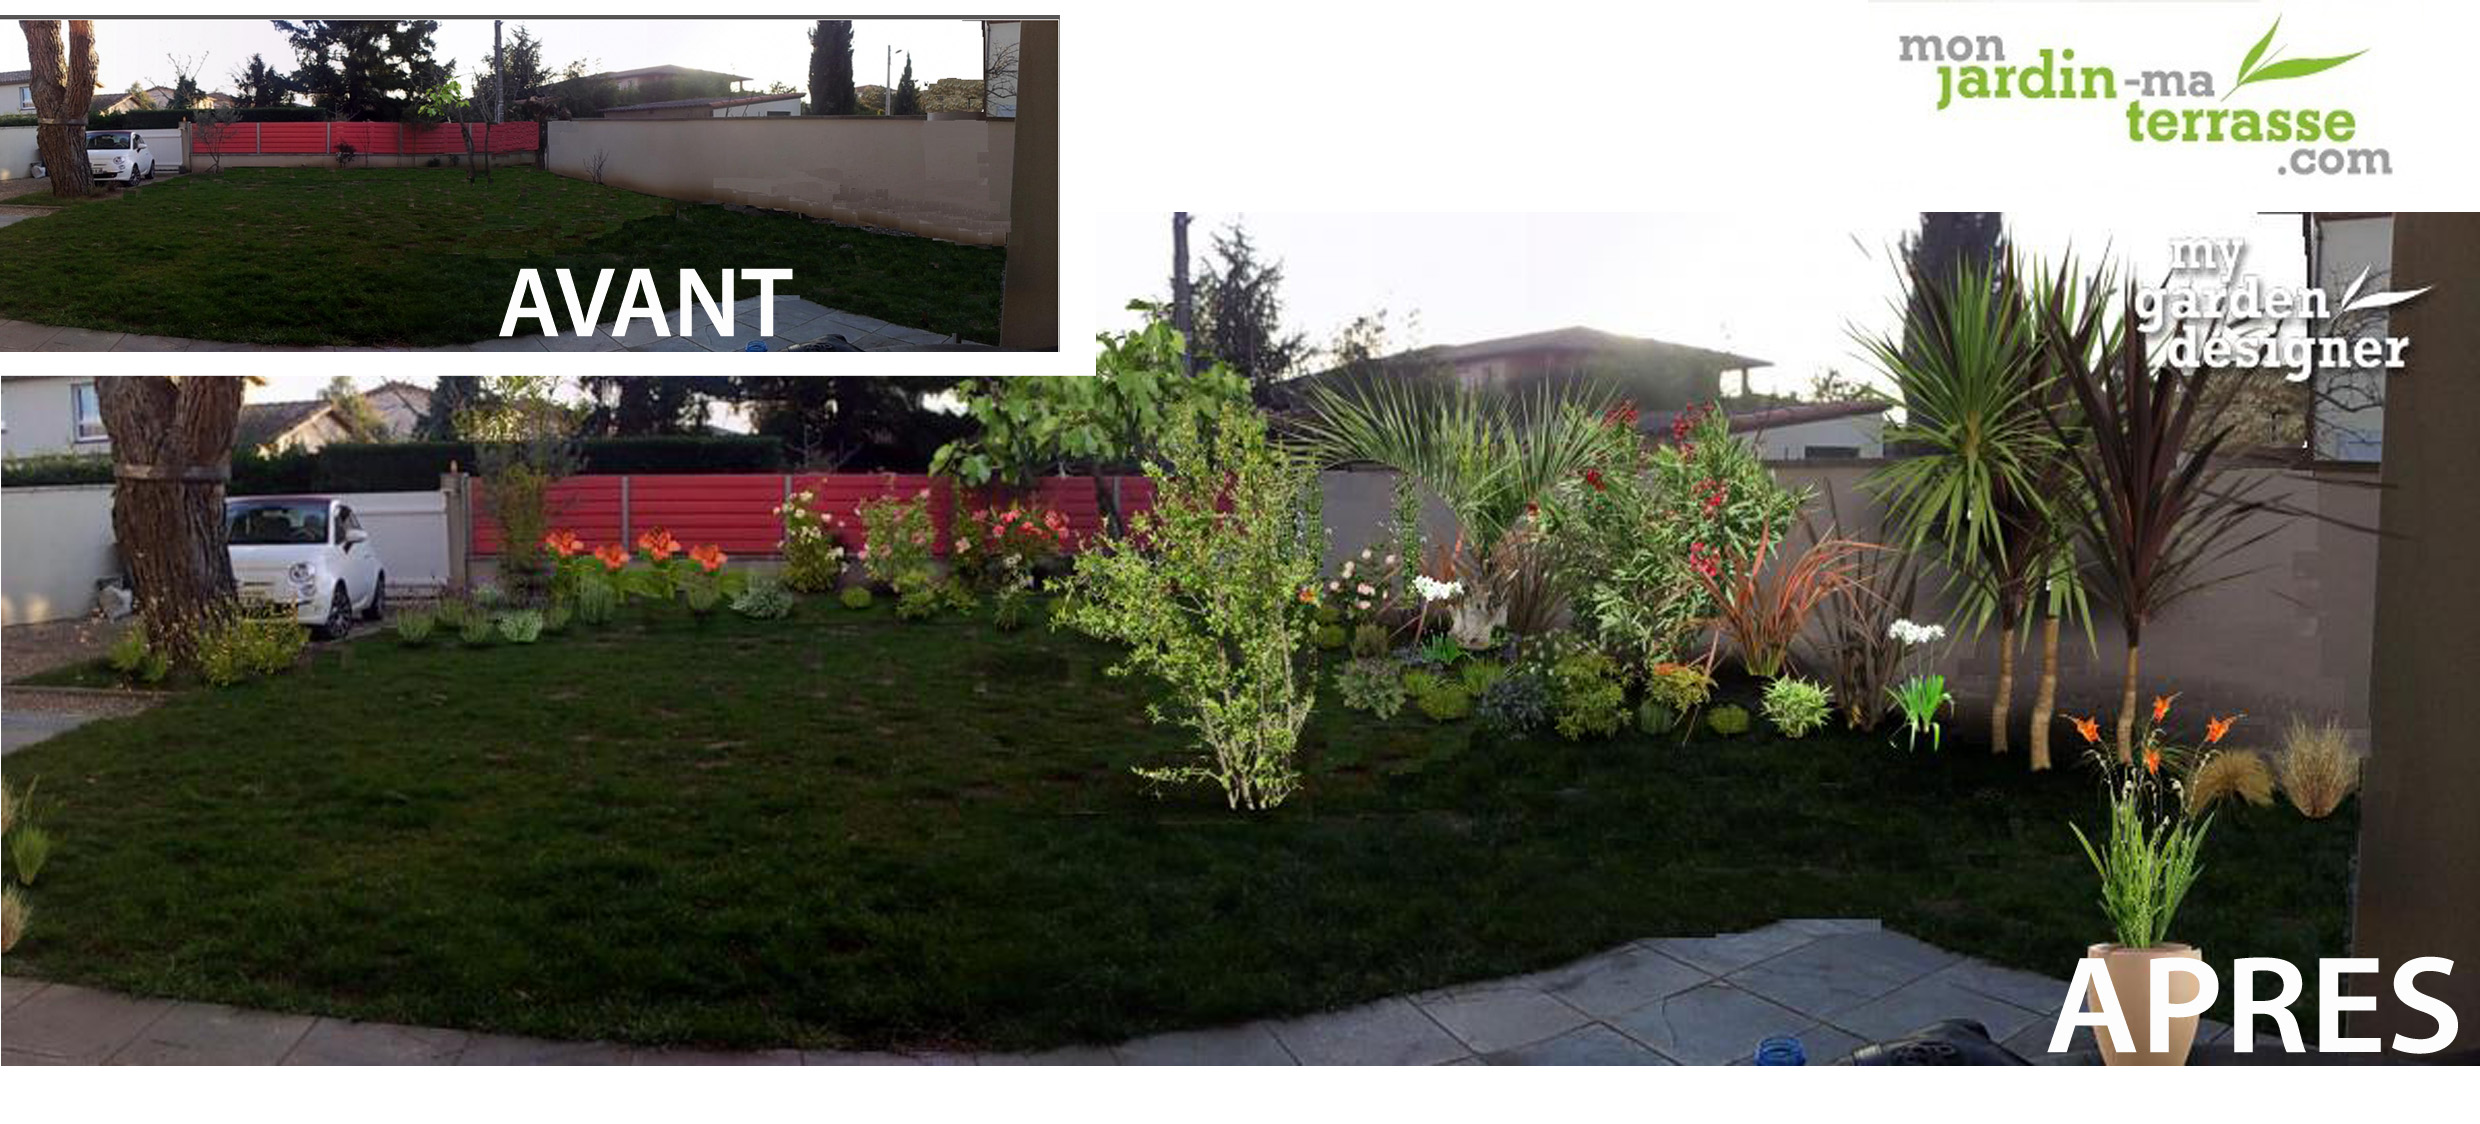 Am nagement paysager de vivaces monjardin for Amenagement jardin vis a vis